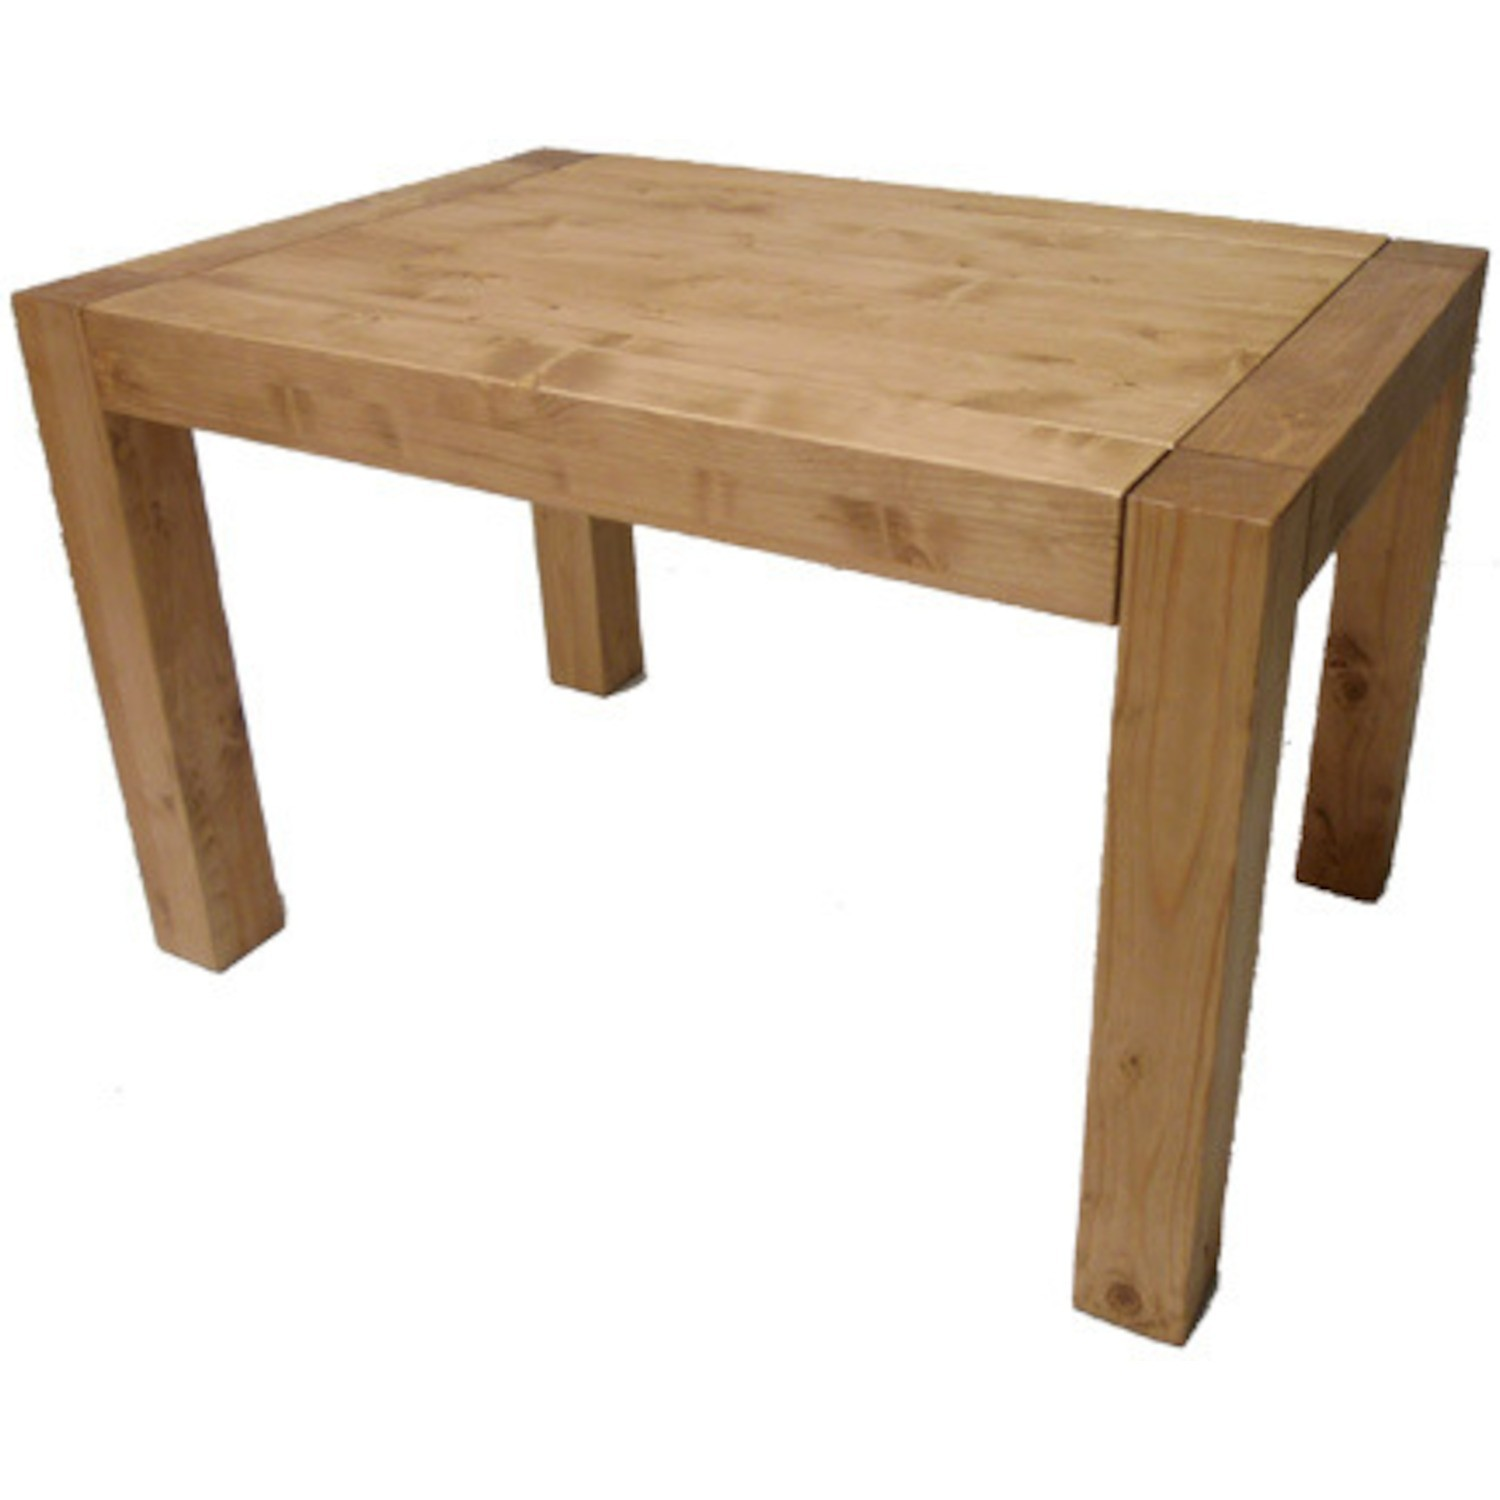 table georgia 120x80 4 pieds carr cir e